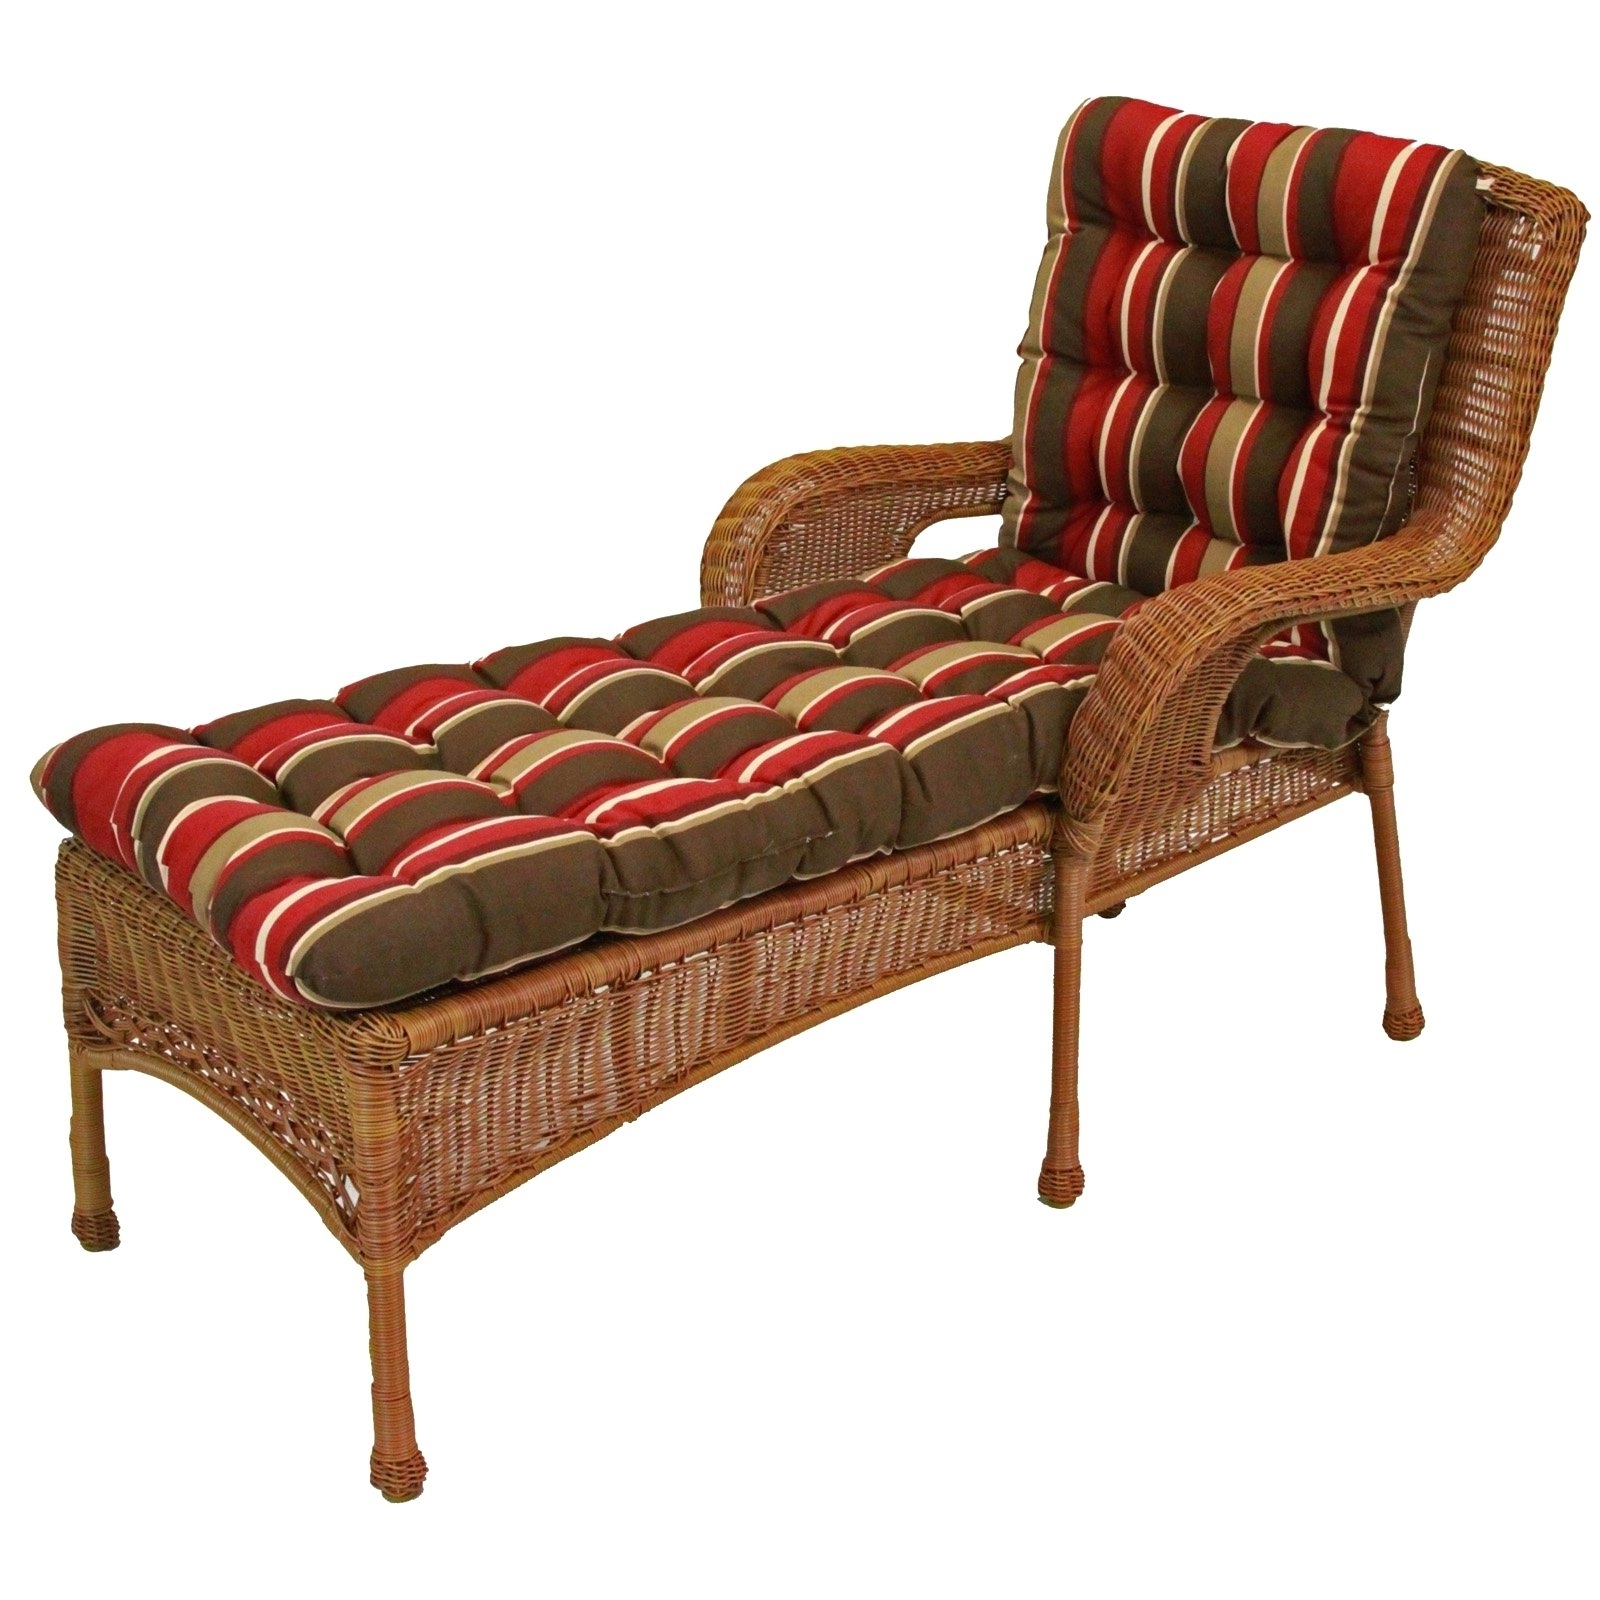 Rattan Chaise Lounge Chair Indoor • Lounge Chairs Ideas Throughout 2017 Keter Chaise Lounges (View 15 of 15)